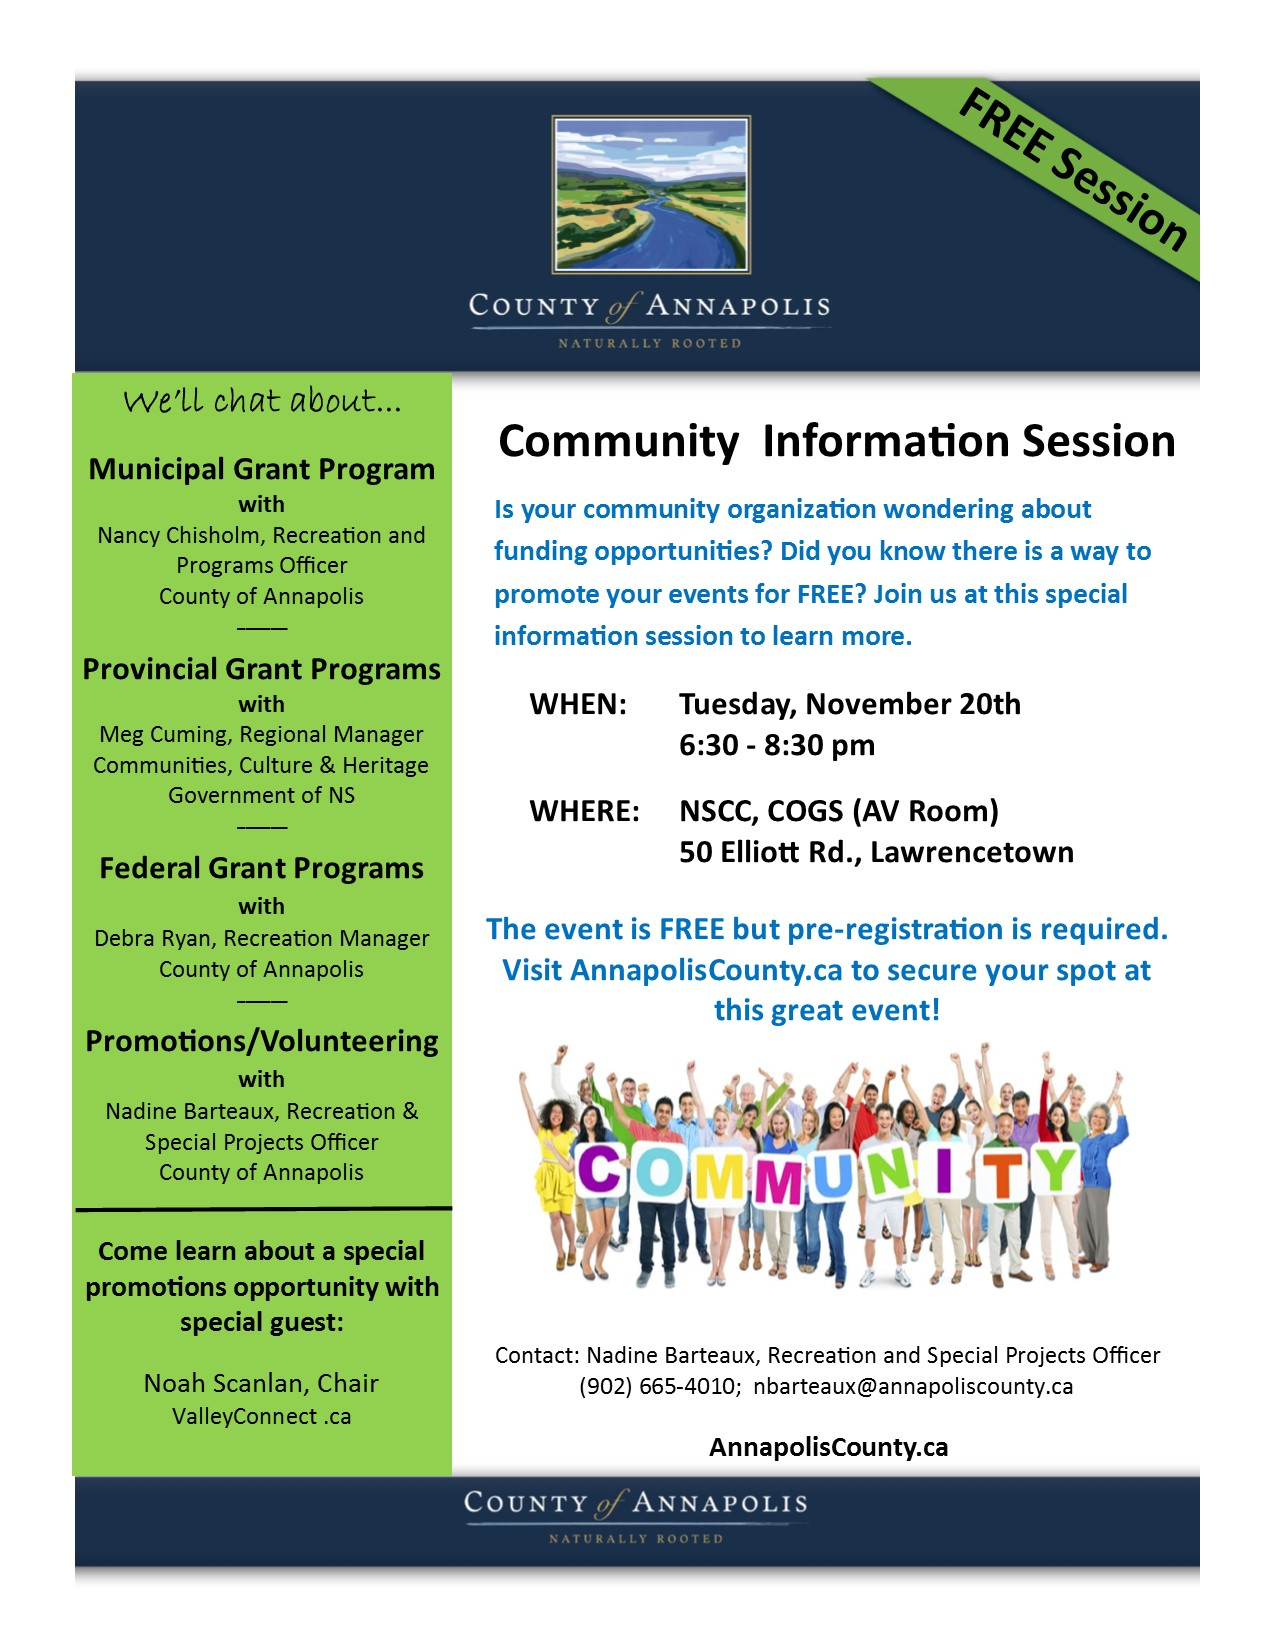 Community Information Session Nov 20 18